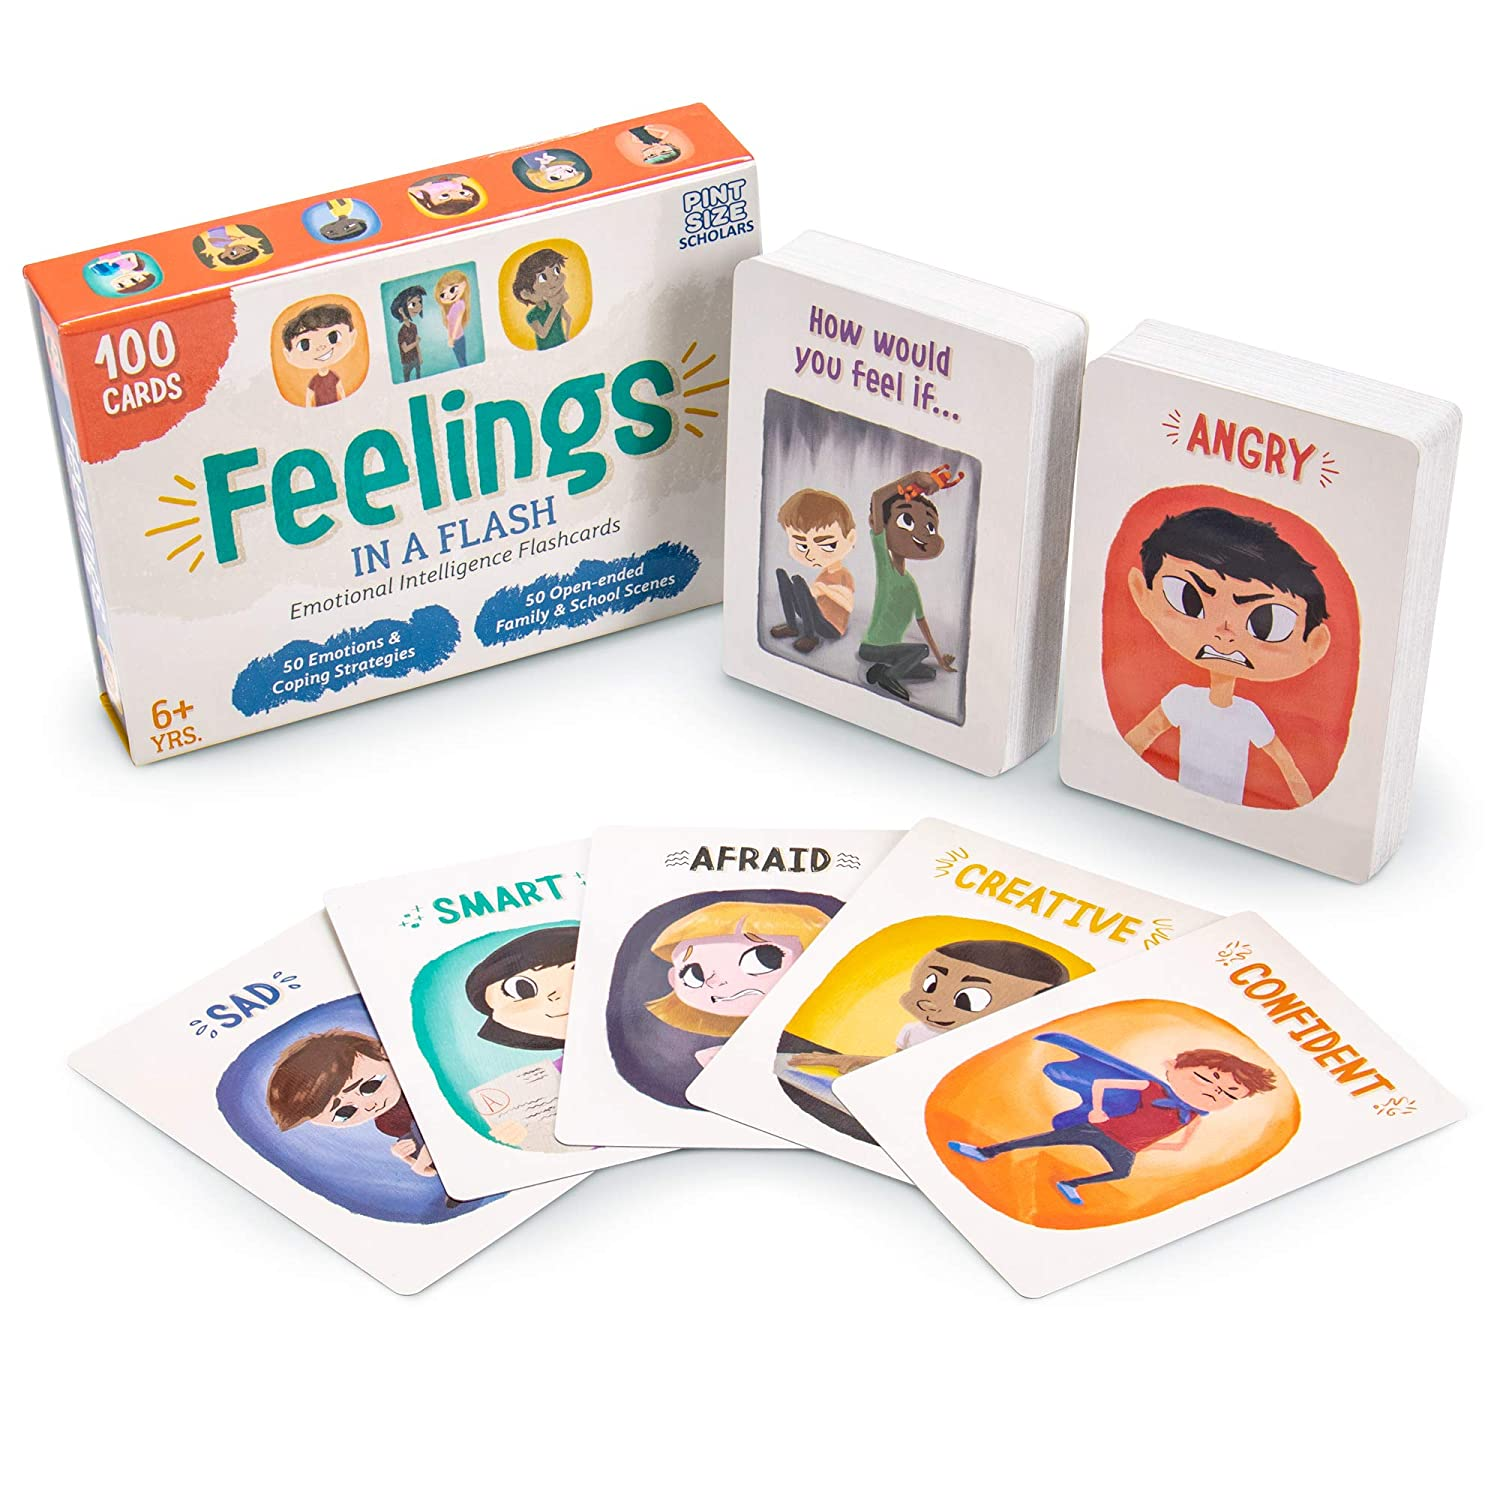 Why Toddlers Needs Lessons About >> Feelings In A Flash Emotional Intelligence Flashcard Game Toddlers Special Needs Children Teaching Empathy Activities Coping Social Skills